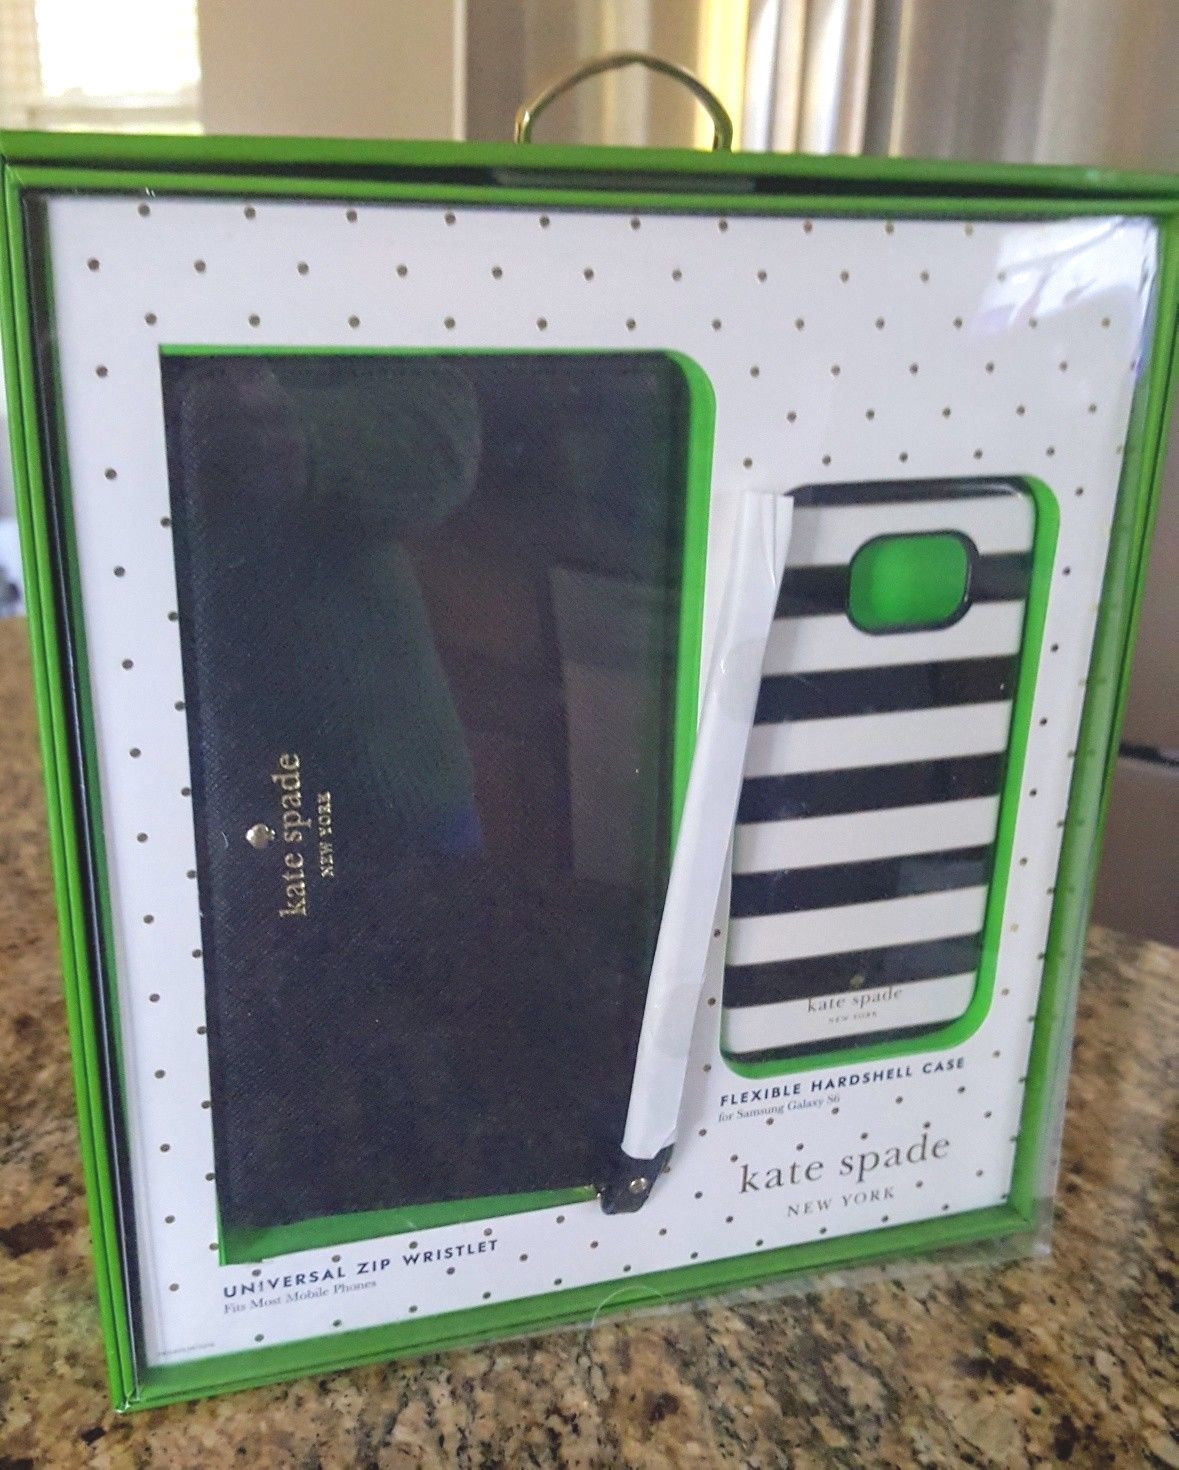 Primary image for KATE SPADE New York Universal Zip Wristlet w/Phone Hard case Gift Set NIB WT